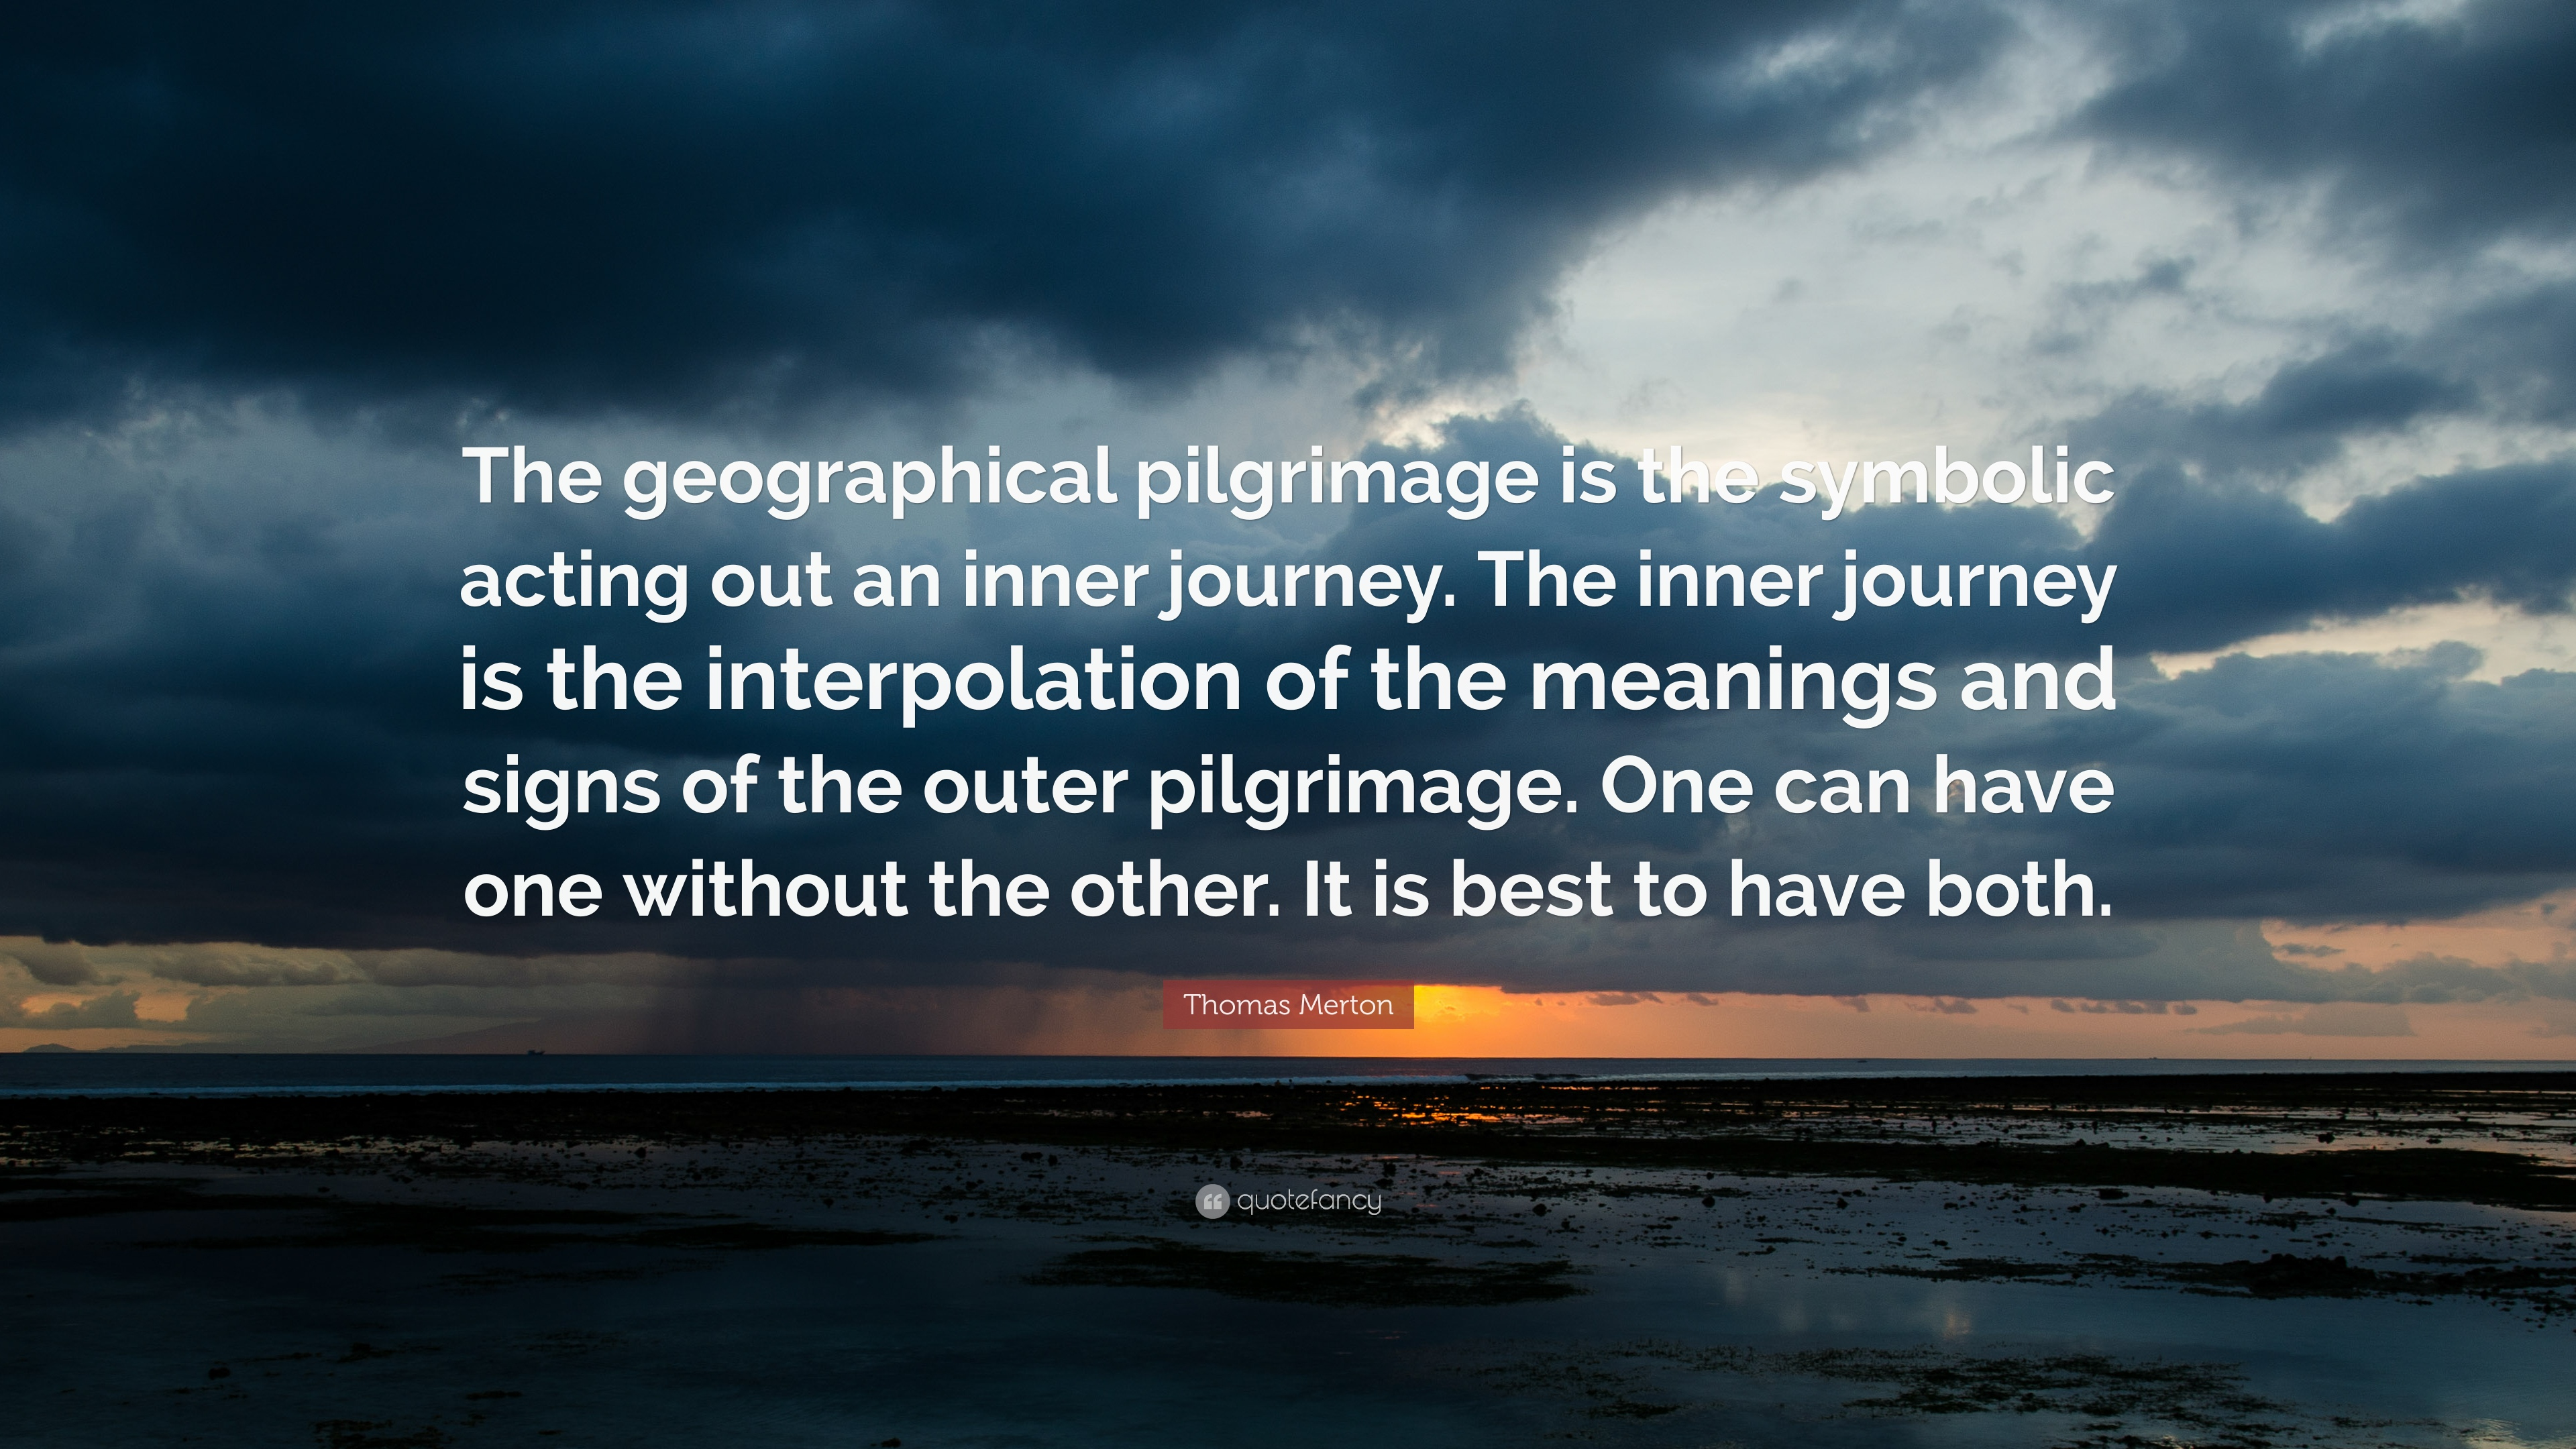 Quotes about acting 40 wallpapers quotefancy quotes about acting the geographical pilgrimage is the symbolic acting out an inner journey biocorpaavc Images